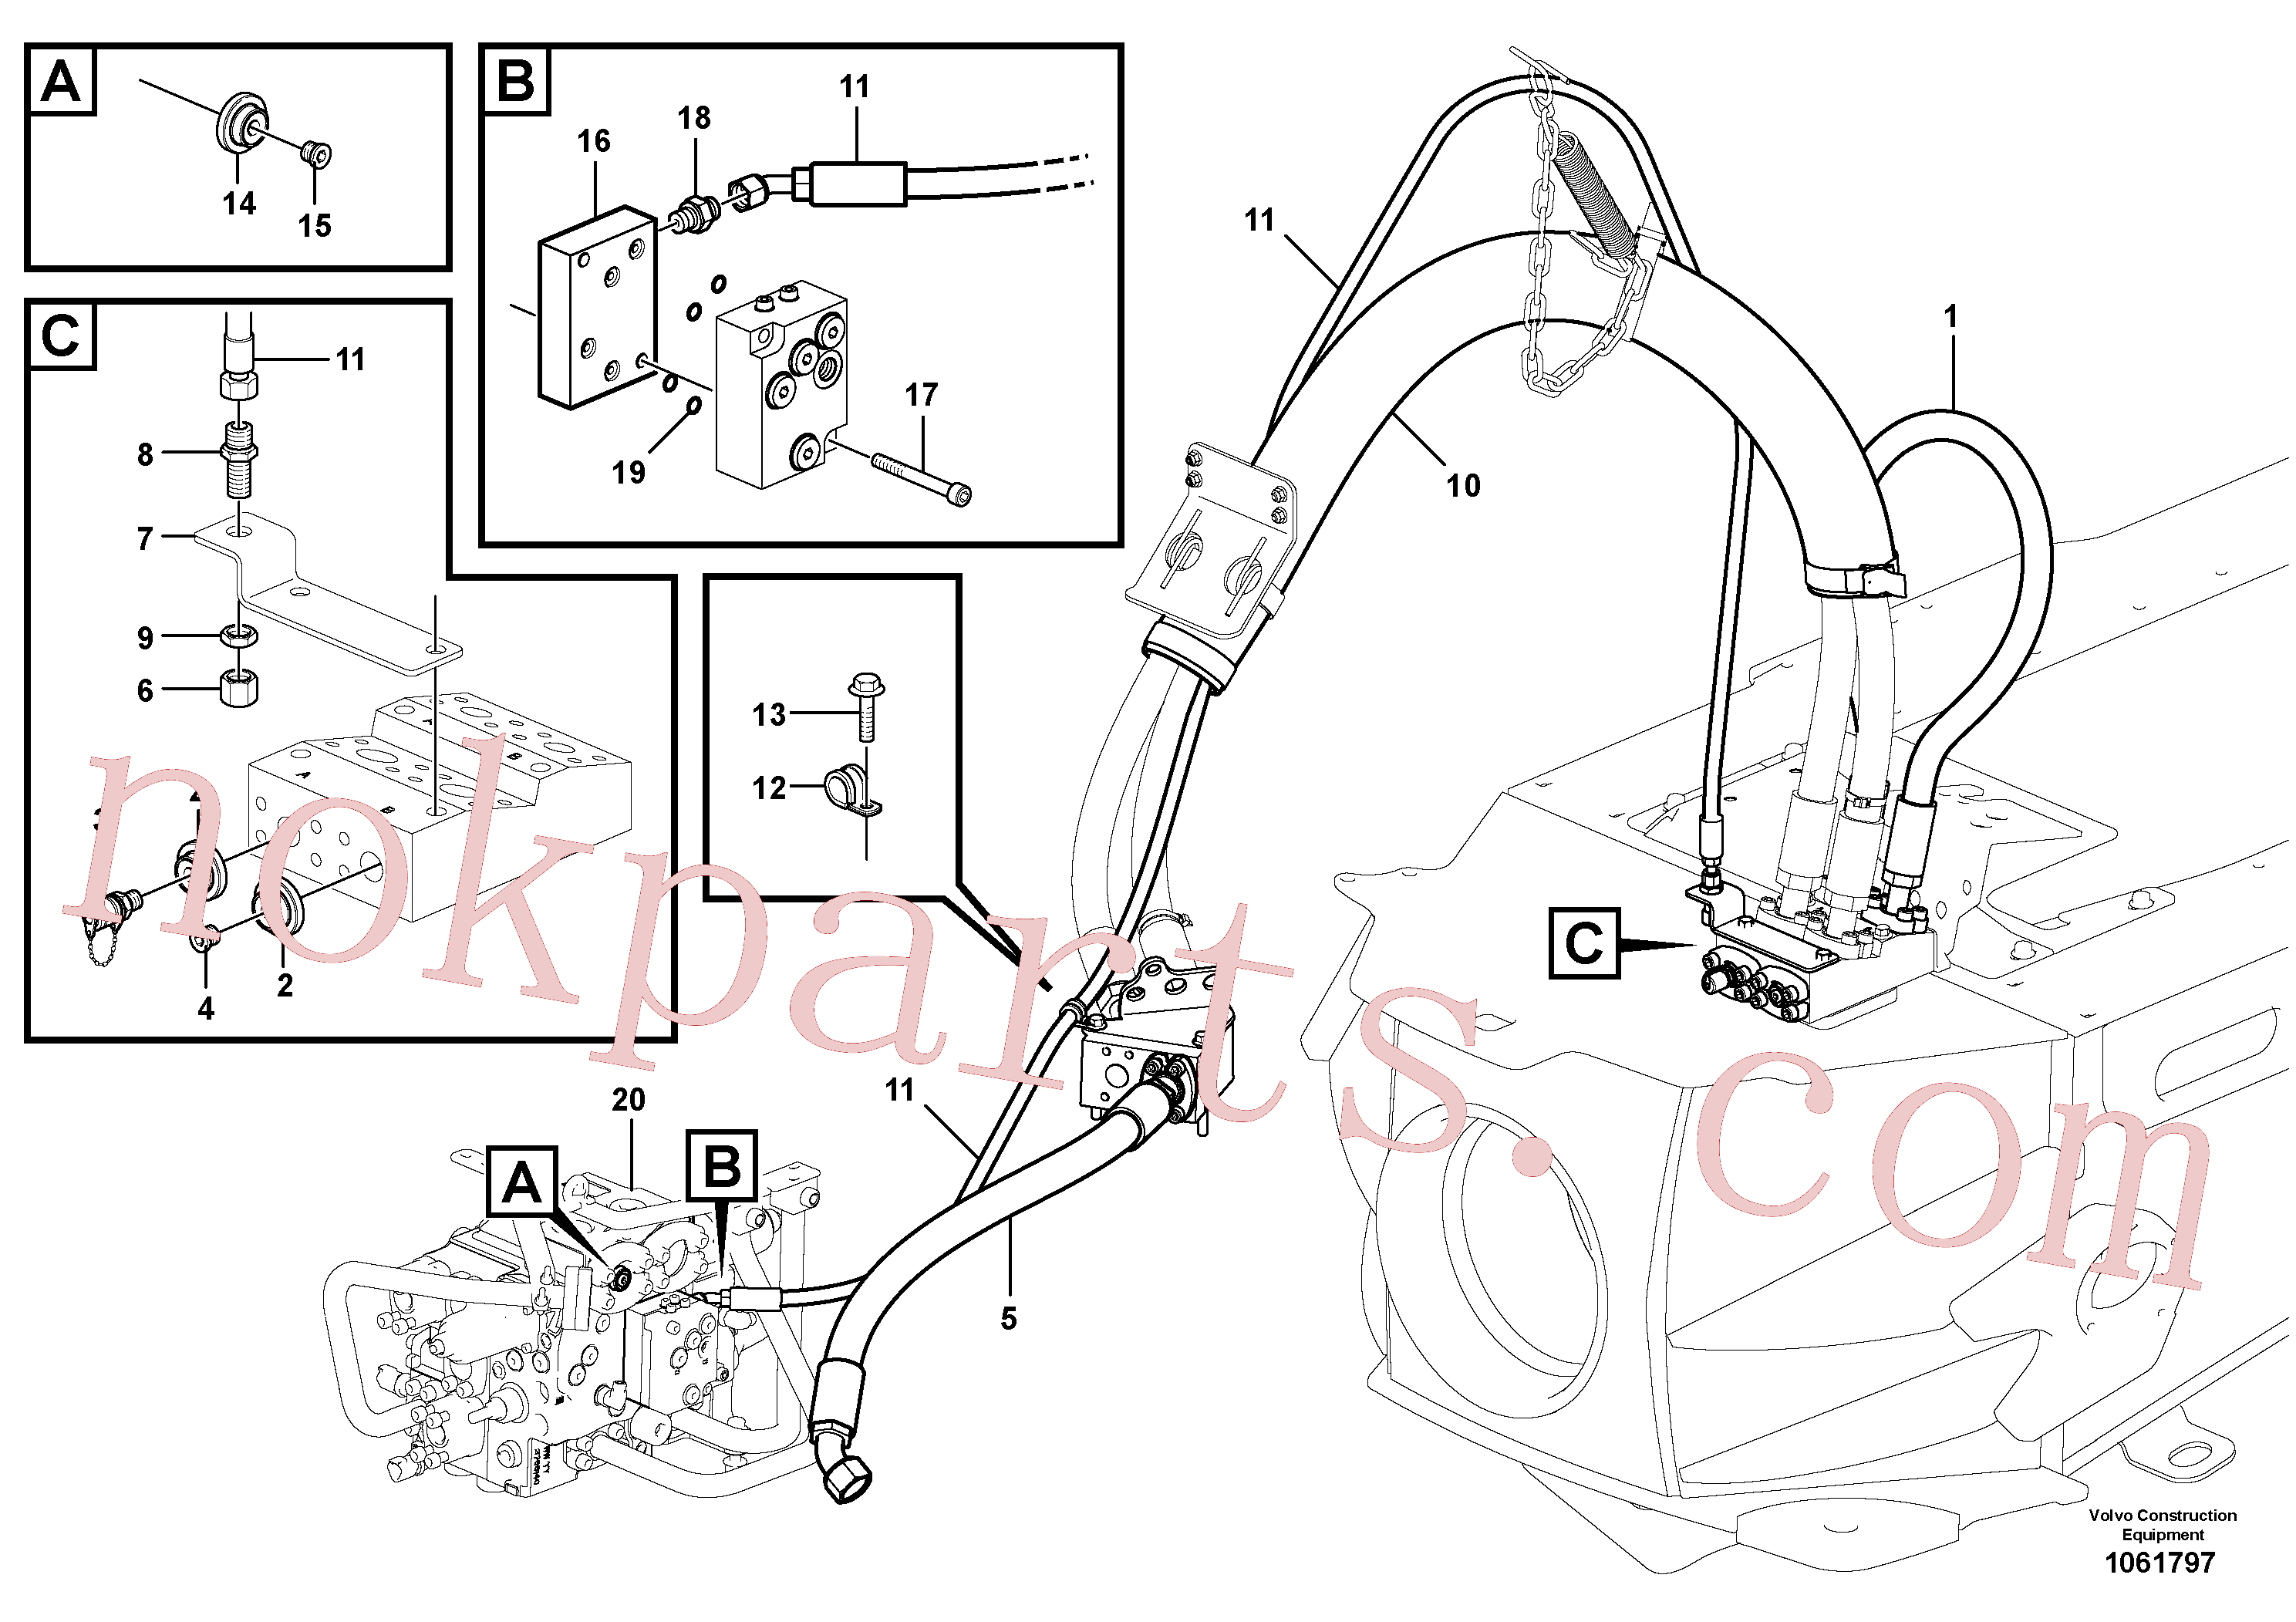 VOE935428 for Volvo Open centre and load sensing system(1061797 assembly)